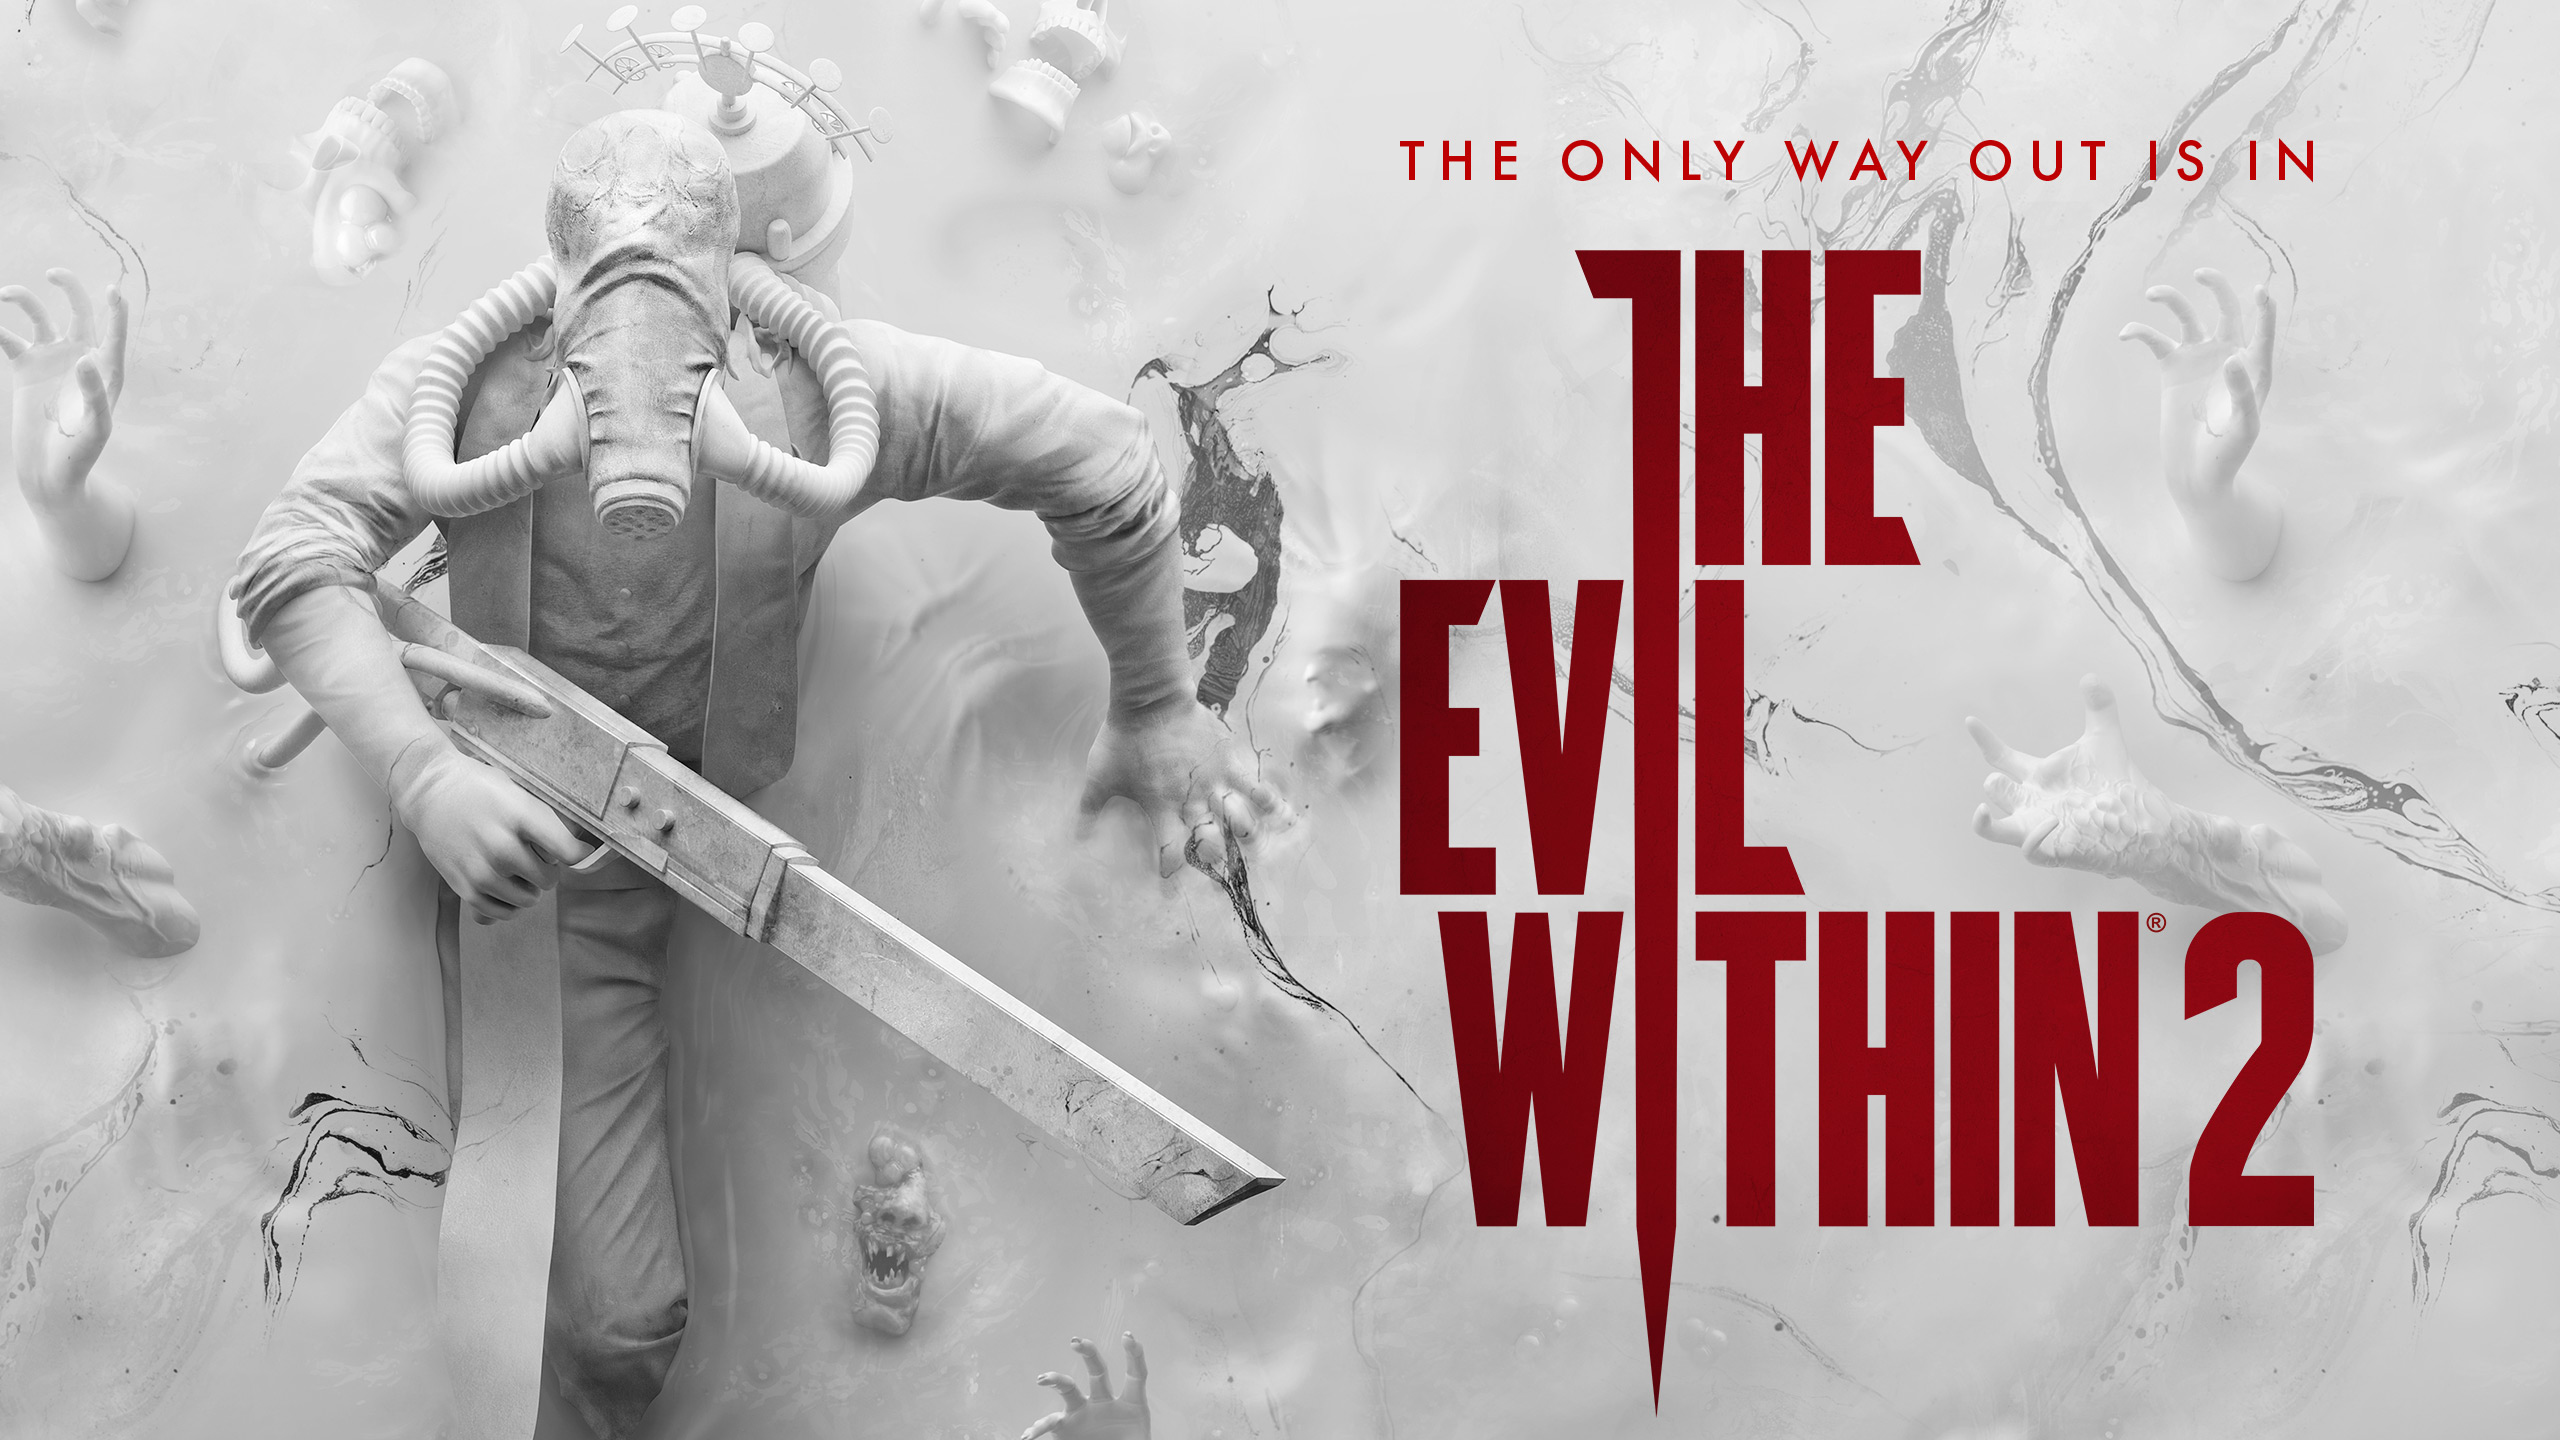 Wallpaper Theodore Harbinger The Evil Within 2 Hd: The Evil Within 2 Full HD Wallpaper And Background Image